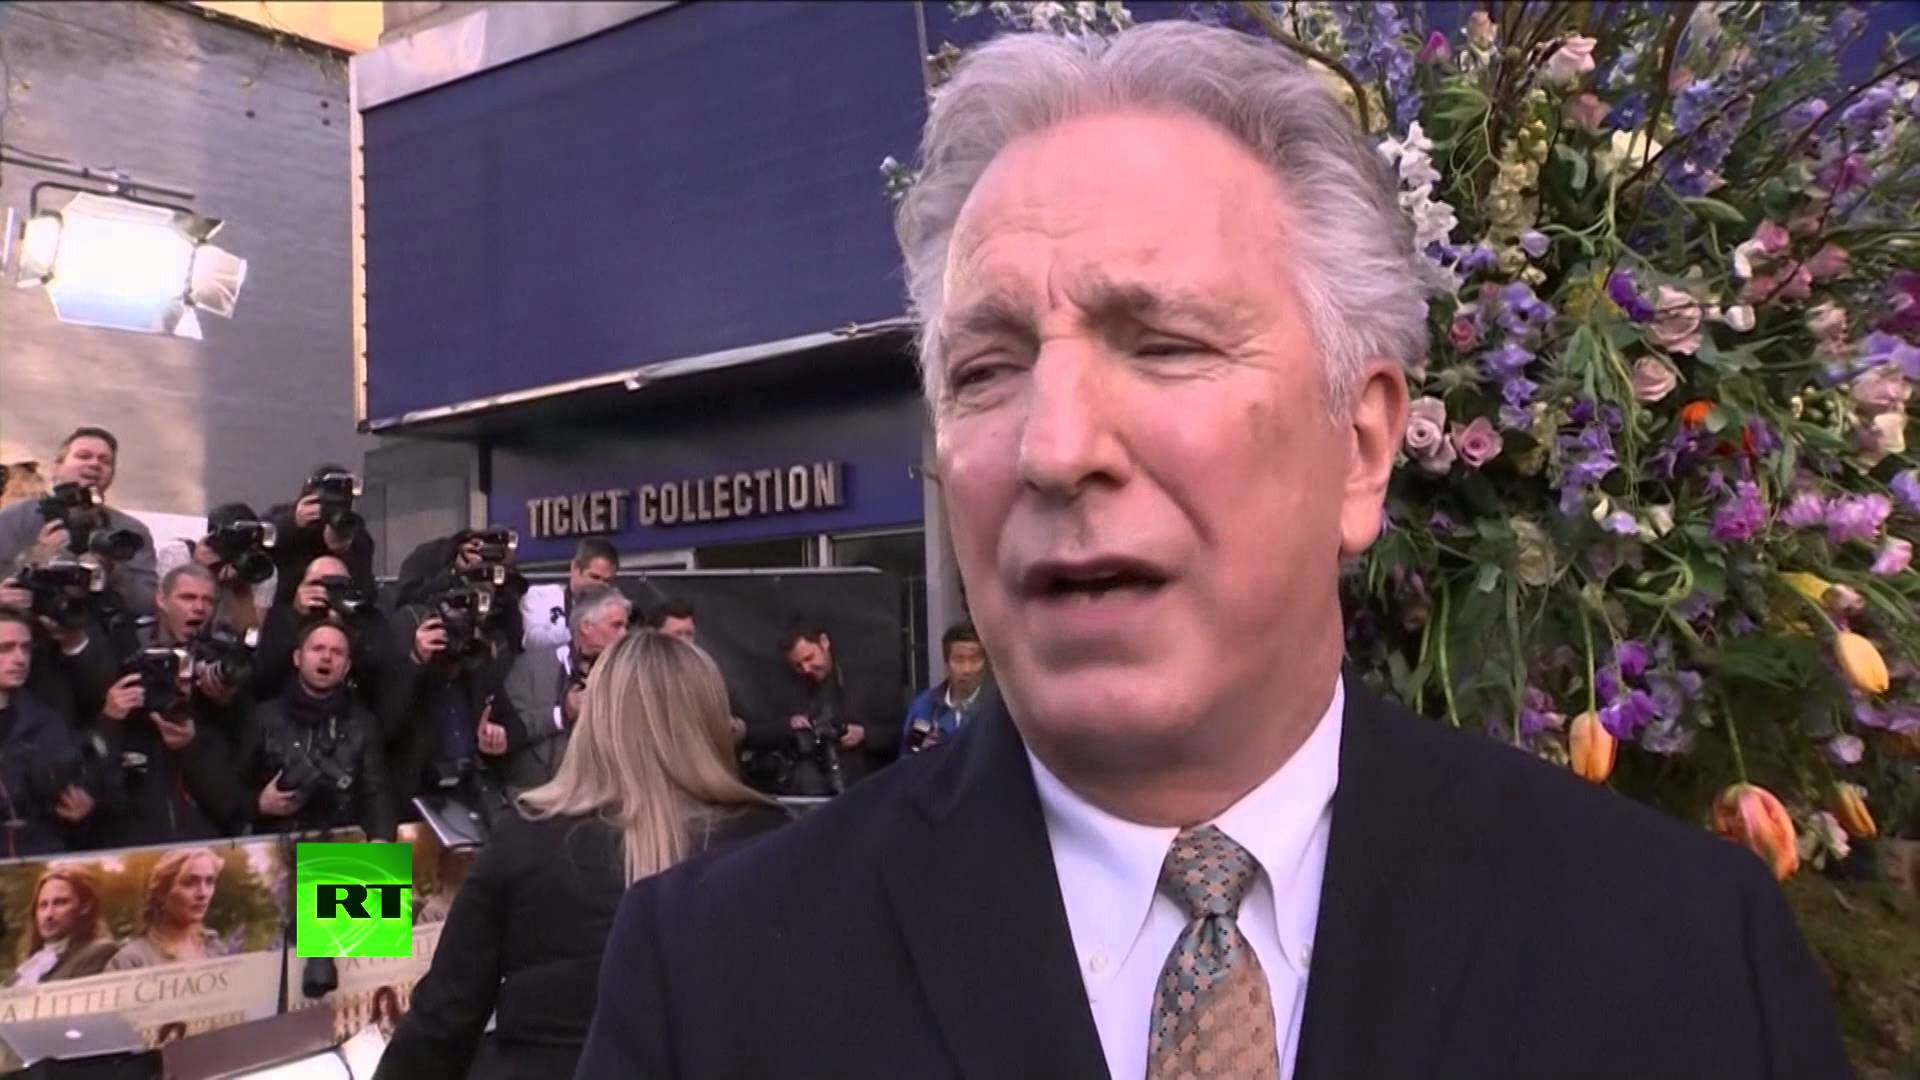 RIP Alan Rickman who died today from cancer 30